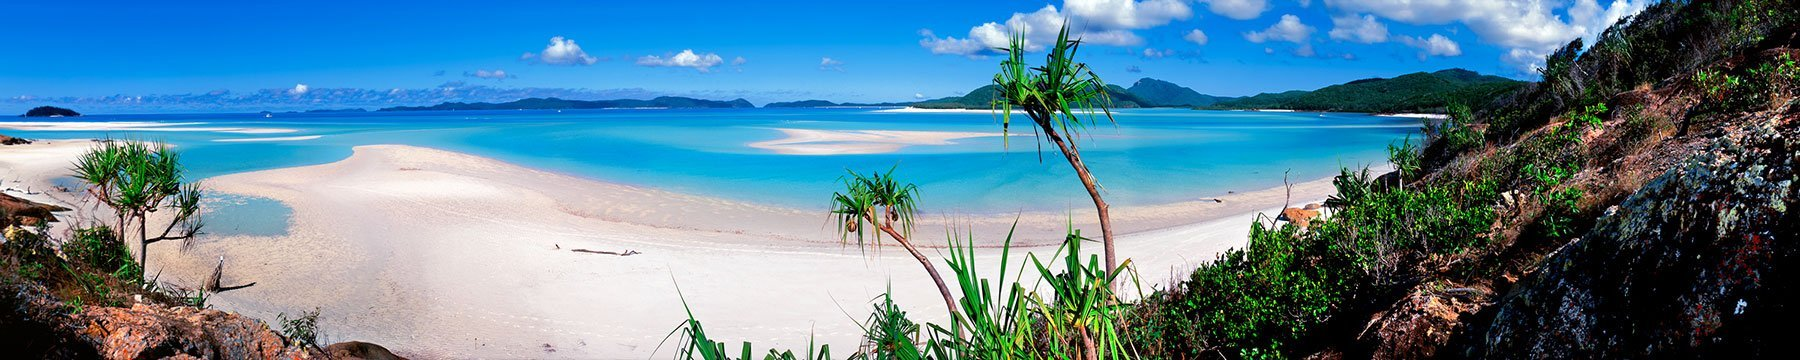 Pure tranquillity at Hill Inlet, Whitsunday Island, Qld, Australia.